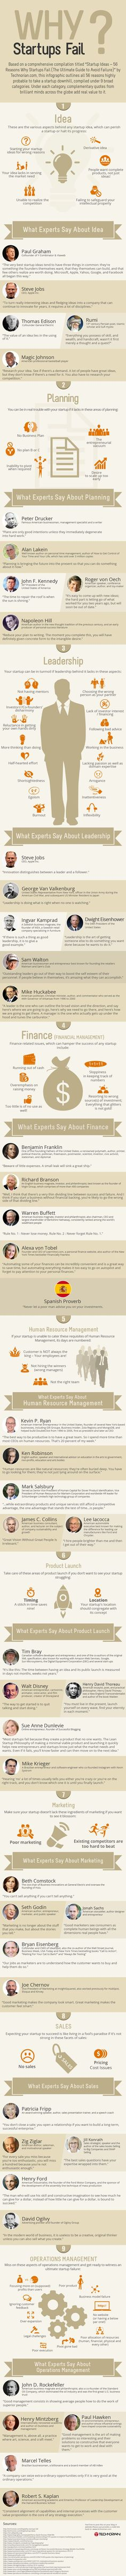 Why Startups Fail #Infographic #Business #Startup #followback #onlinebusiness #entrepreneur